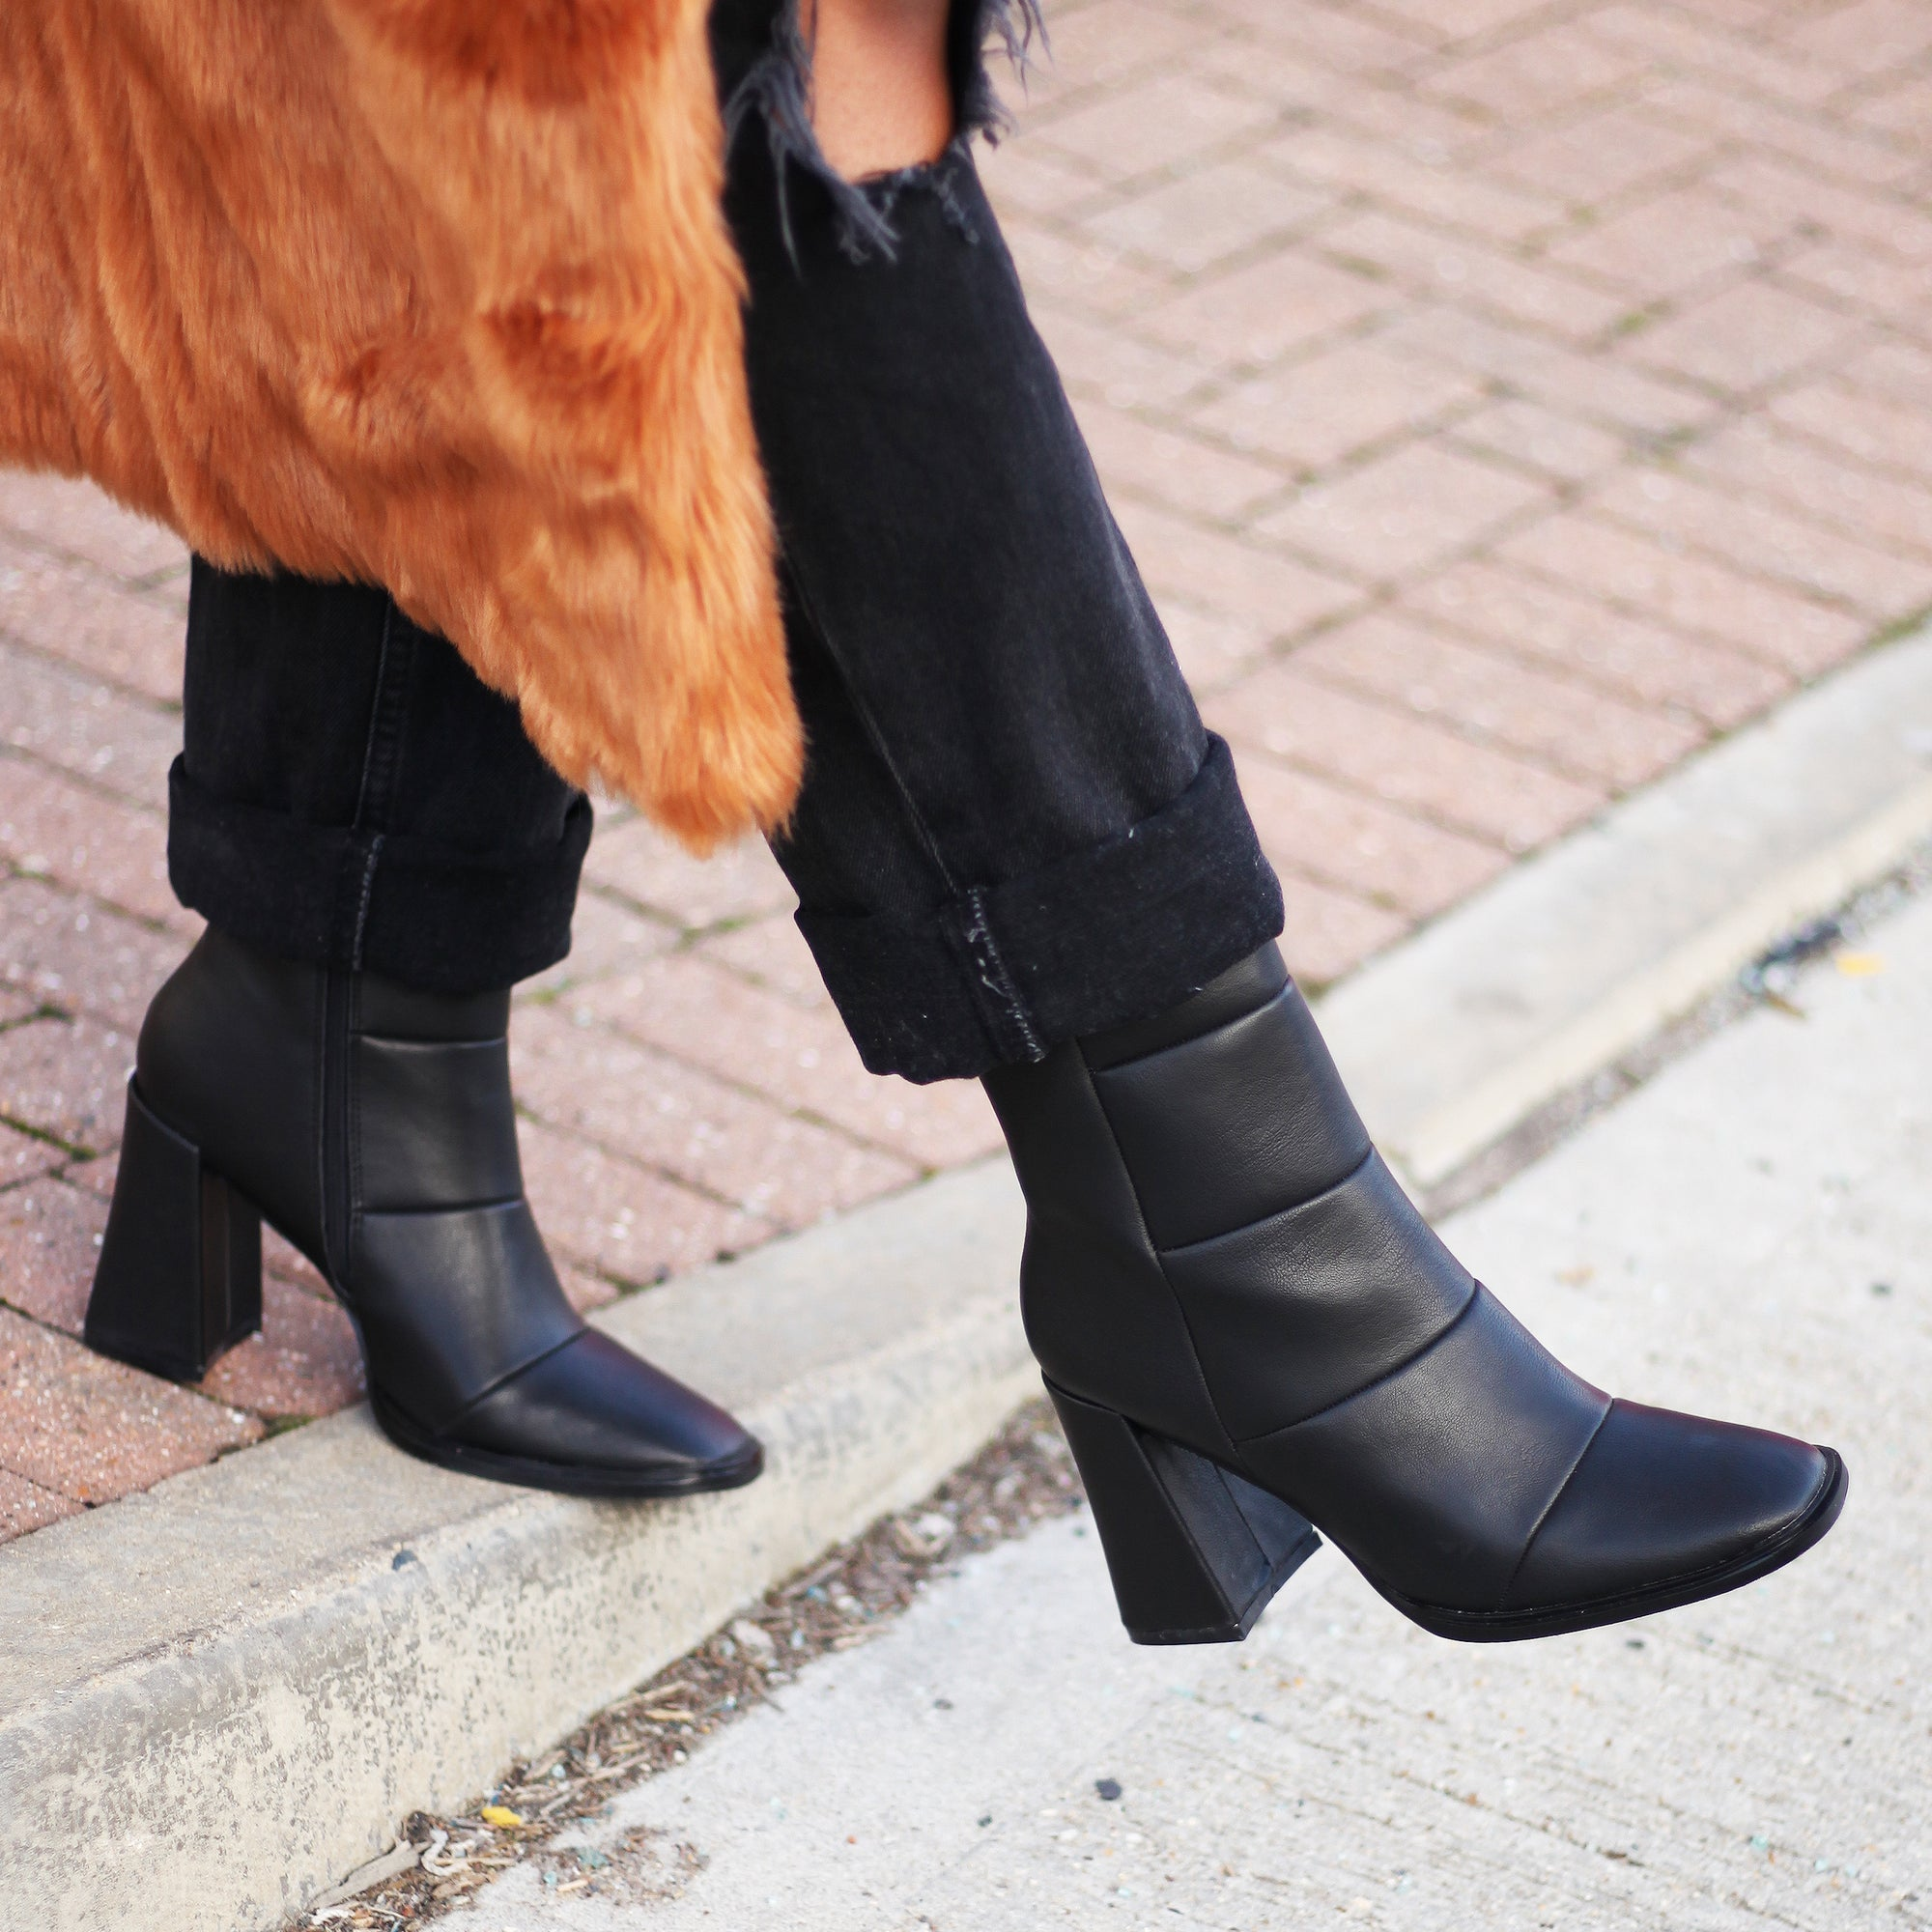 SIMPLY - Boots - linzi-shoes.myshopify.com